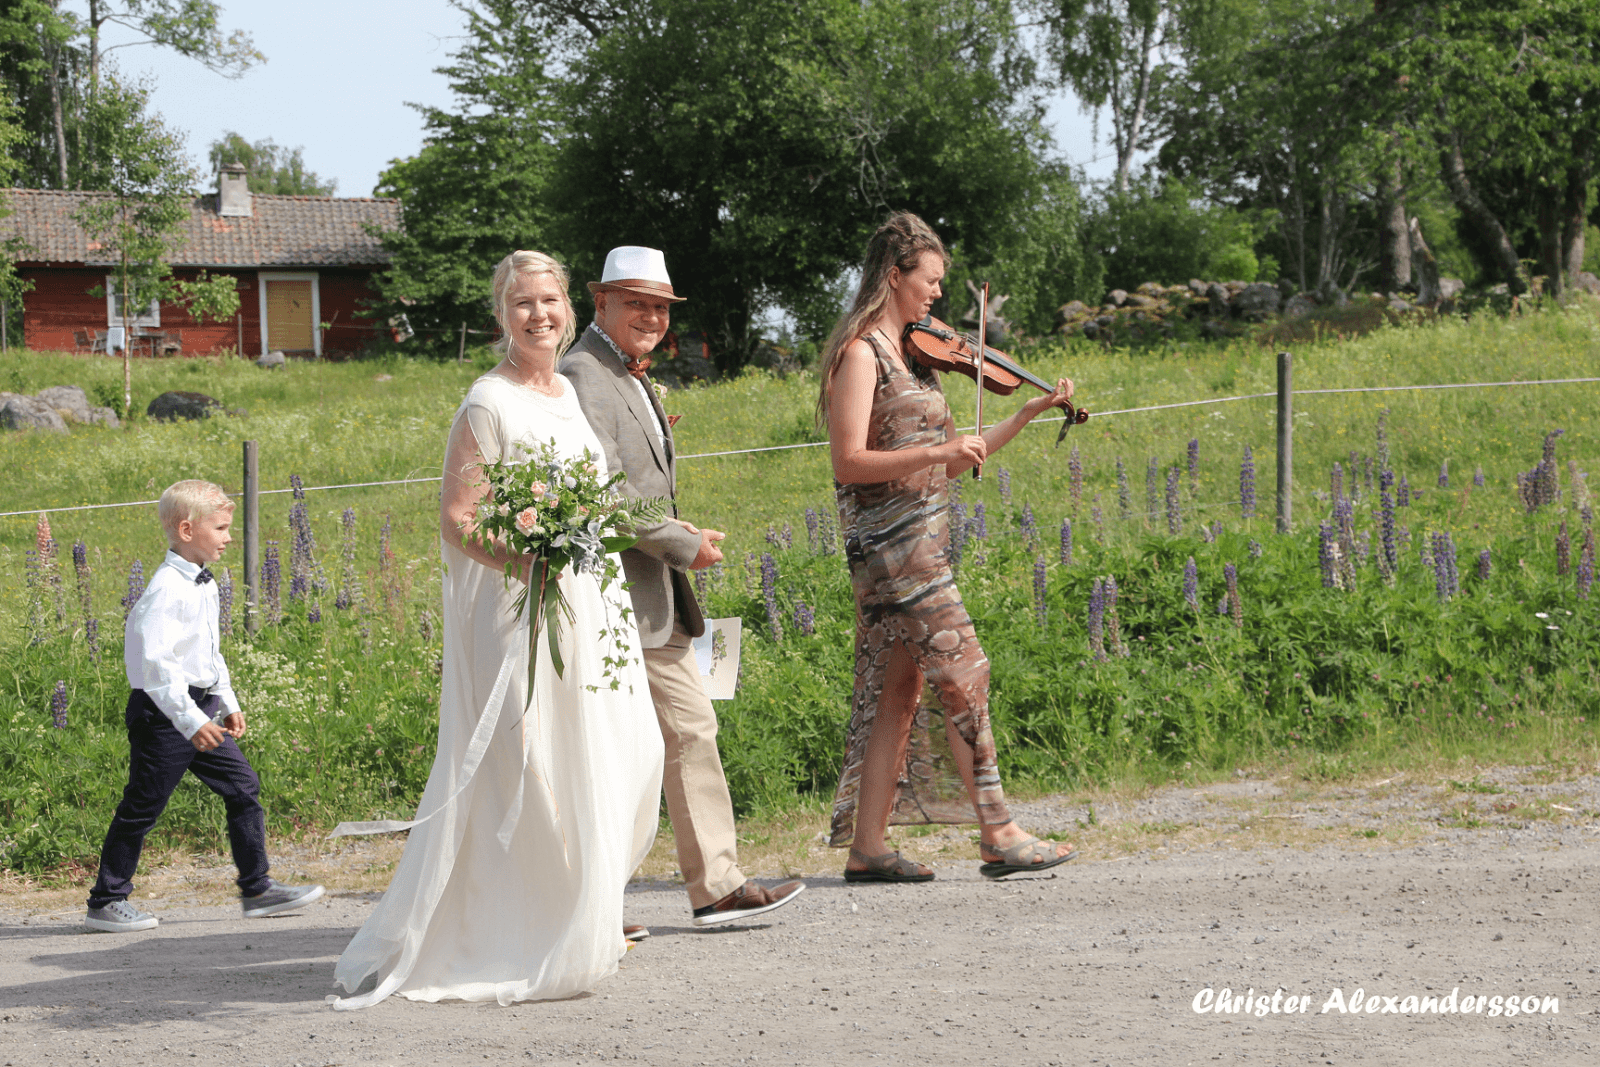 Real bride Carina from Sweden wearing a larimeloom wedding dress design